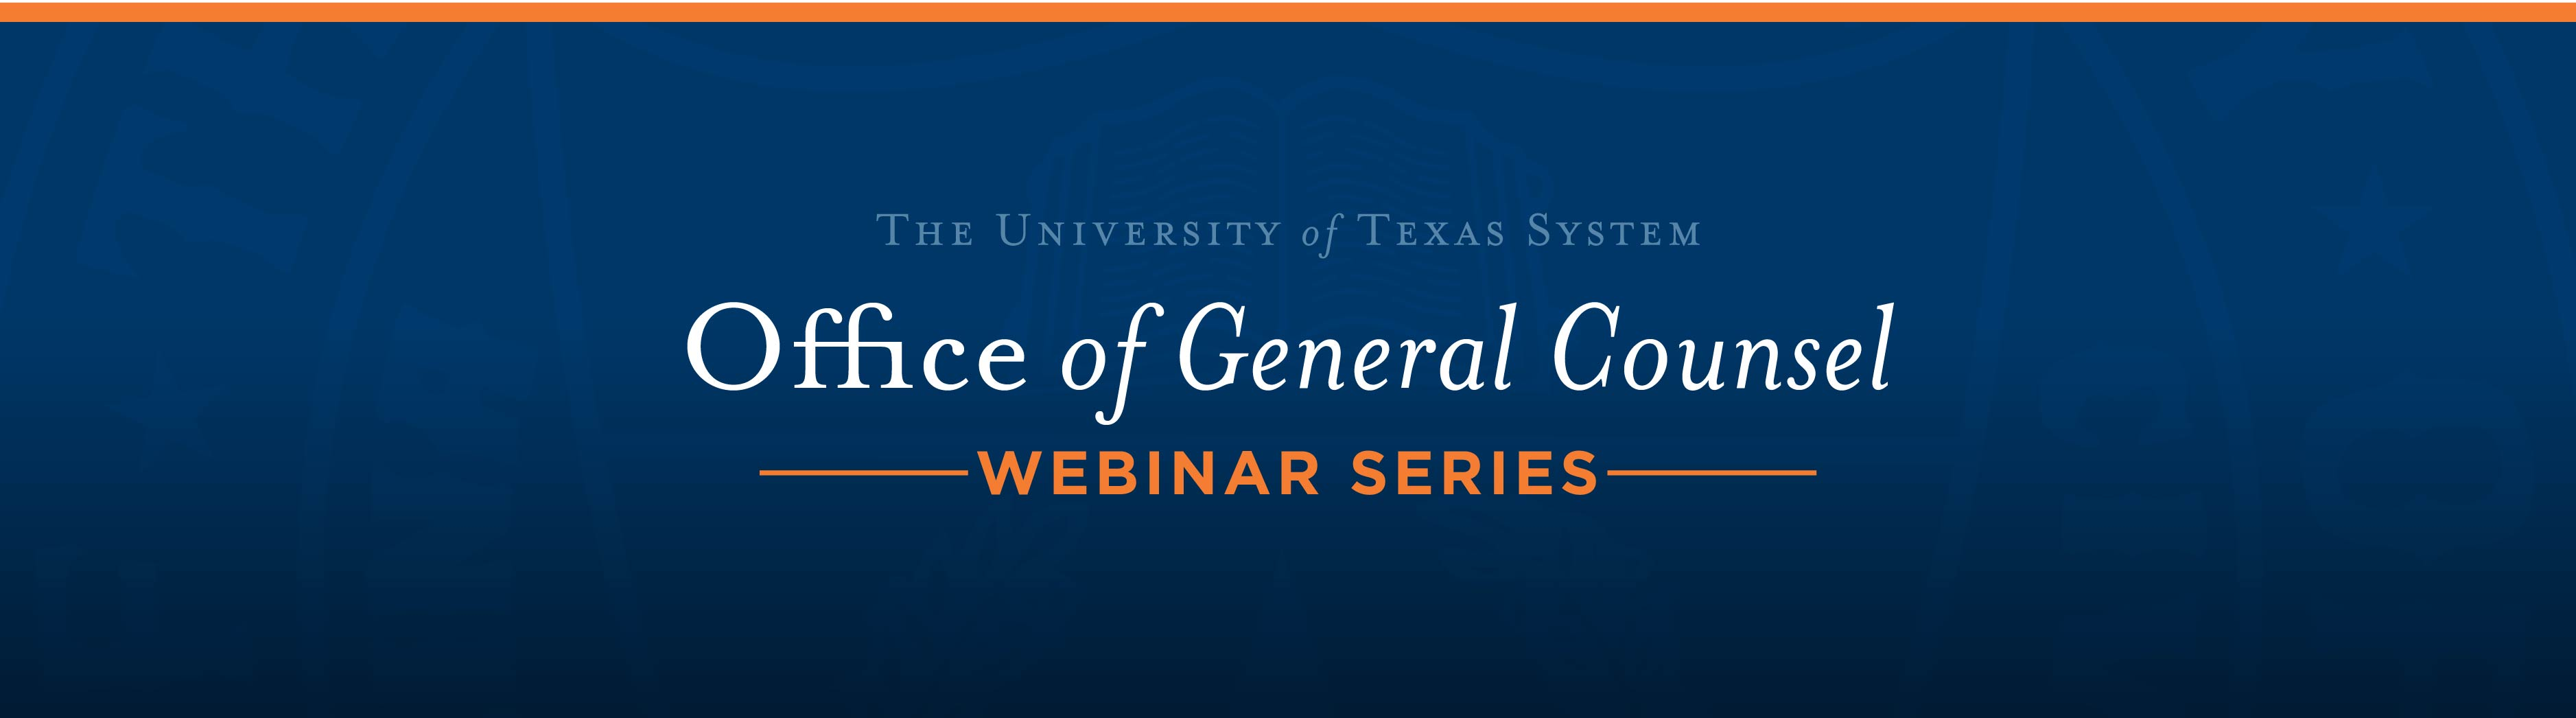 The Office of General Counsel Webinar Series